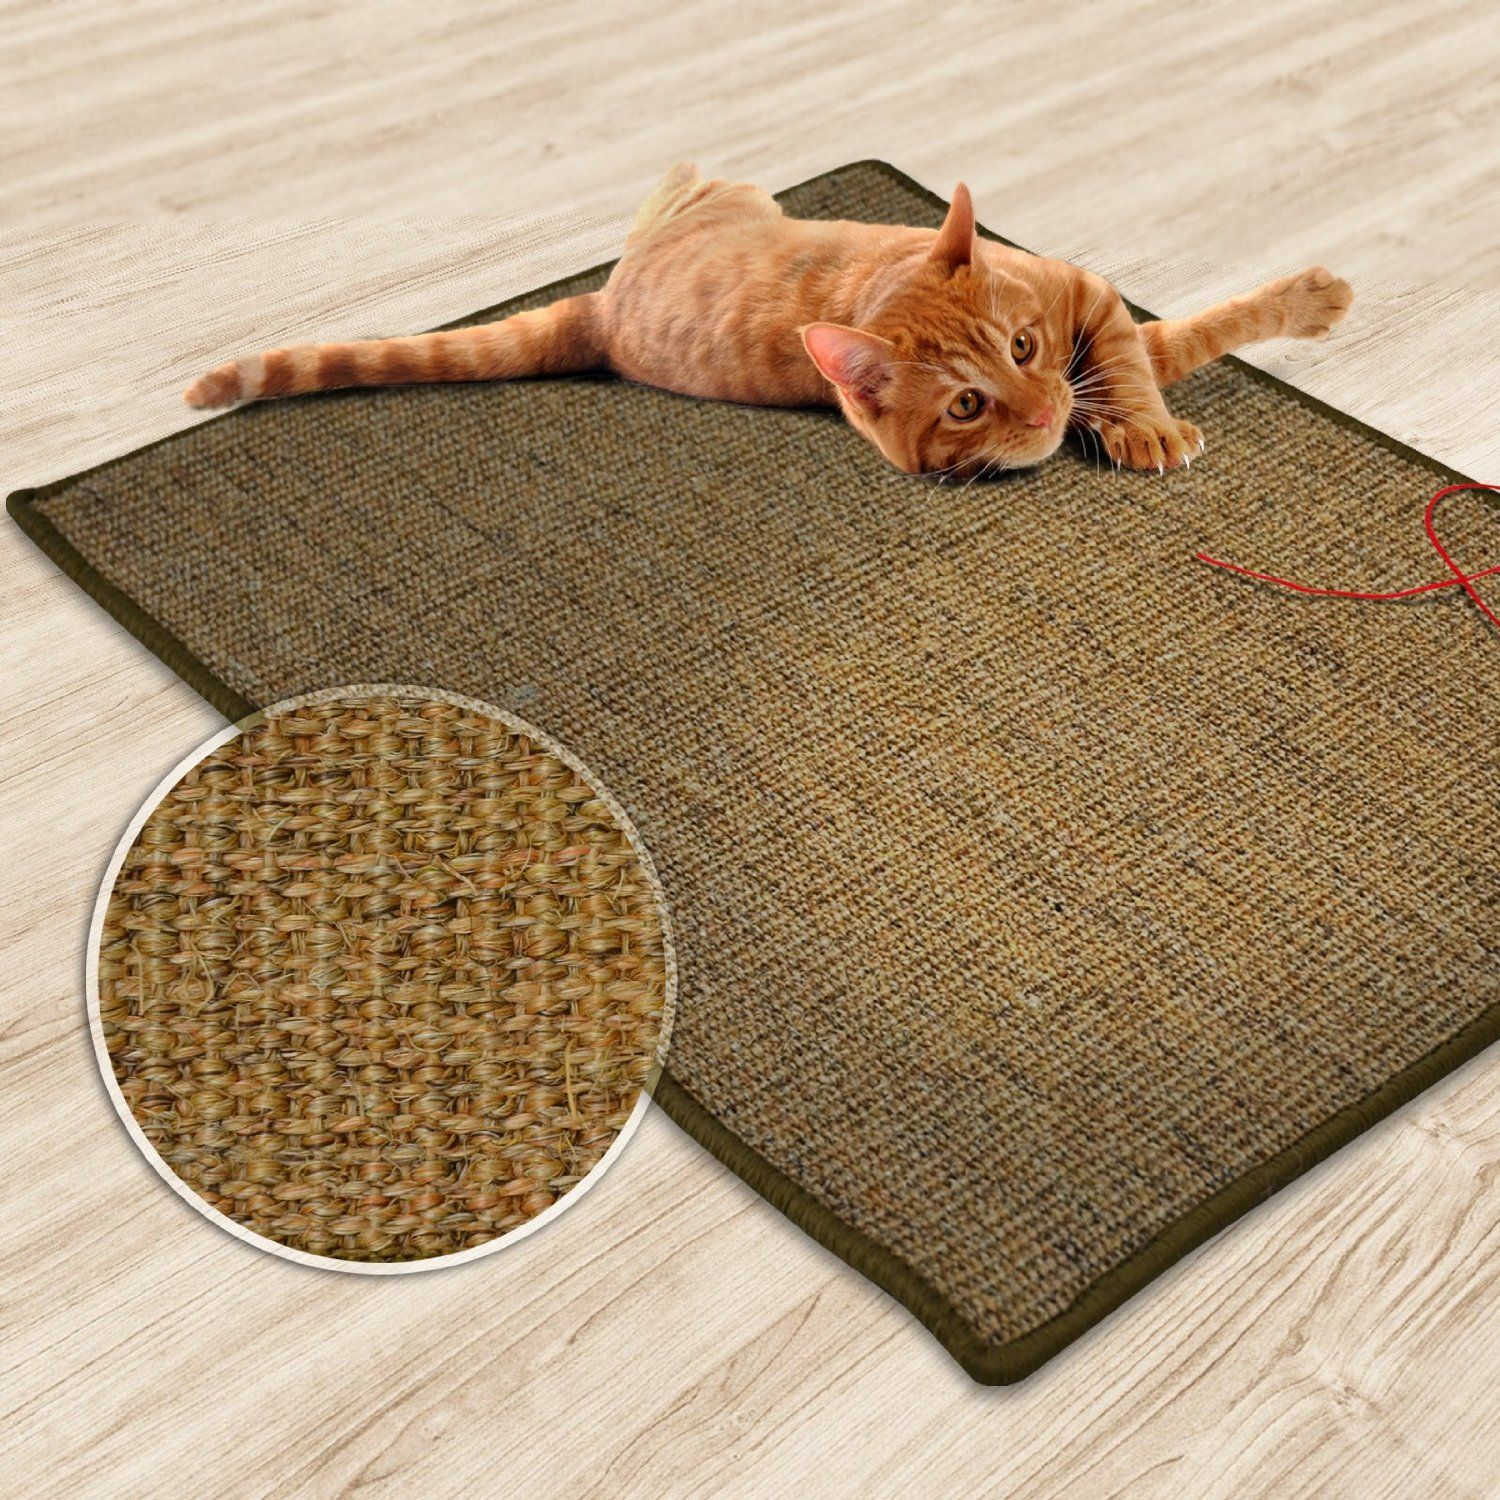 Casa PuraSisal Cat Mat Cork Tweed Scratch Play Pad Multiple Colours And Sizes Available Review More Details Here Beds Furniture